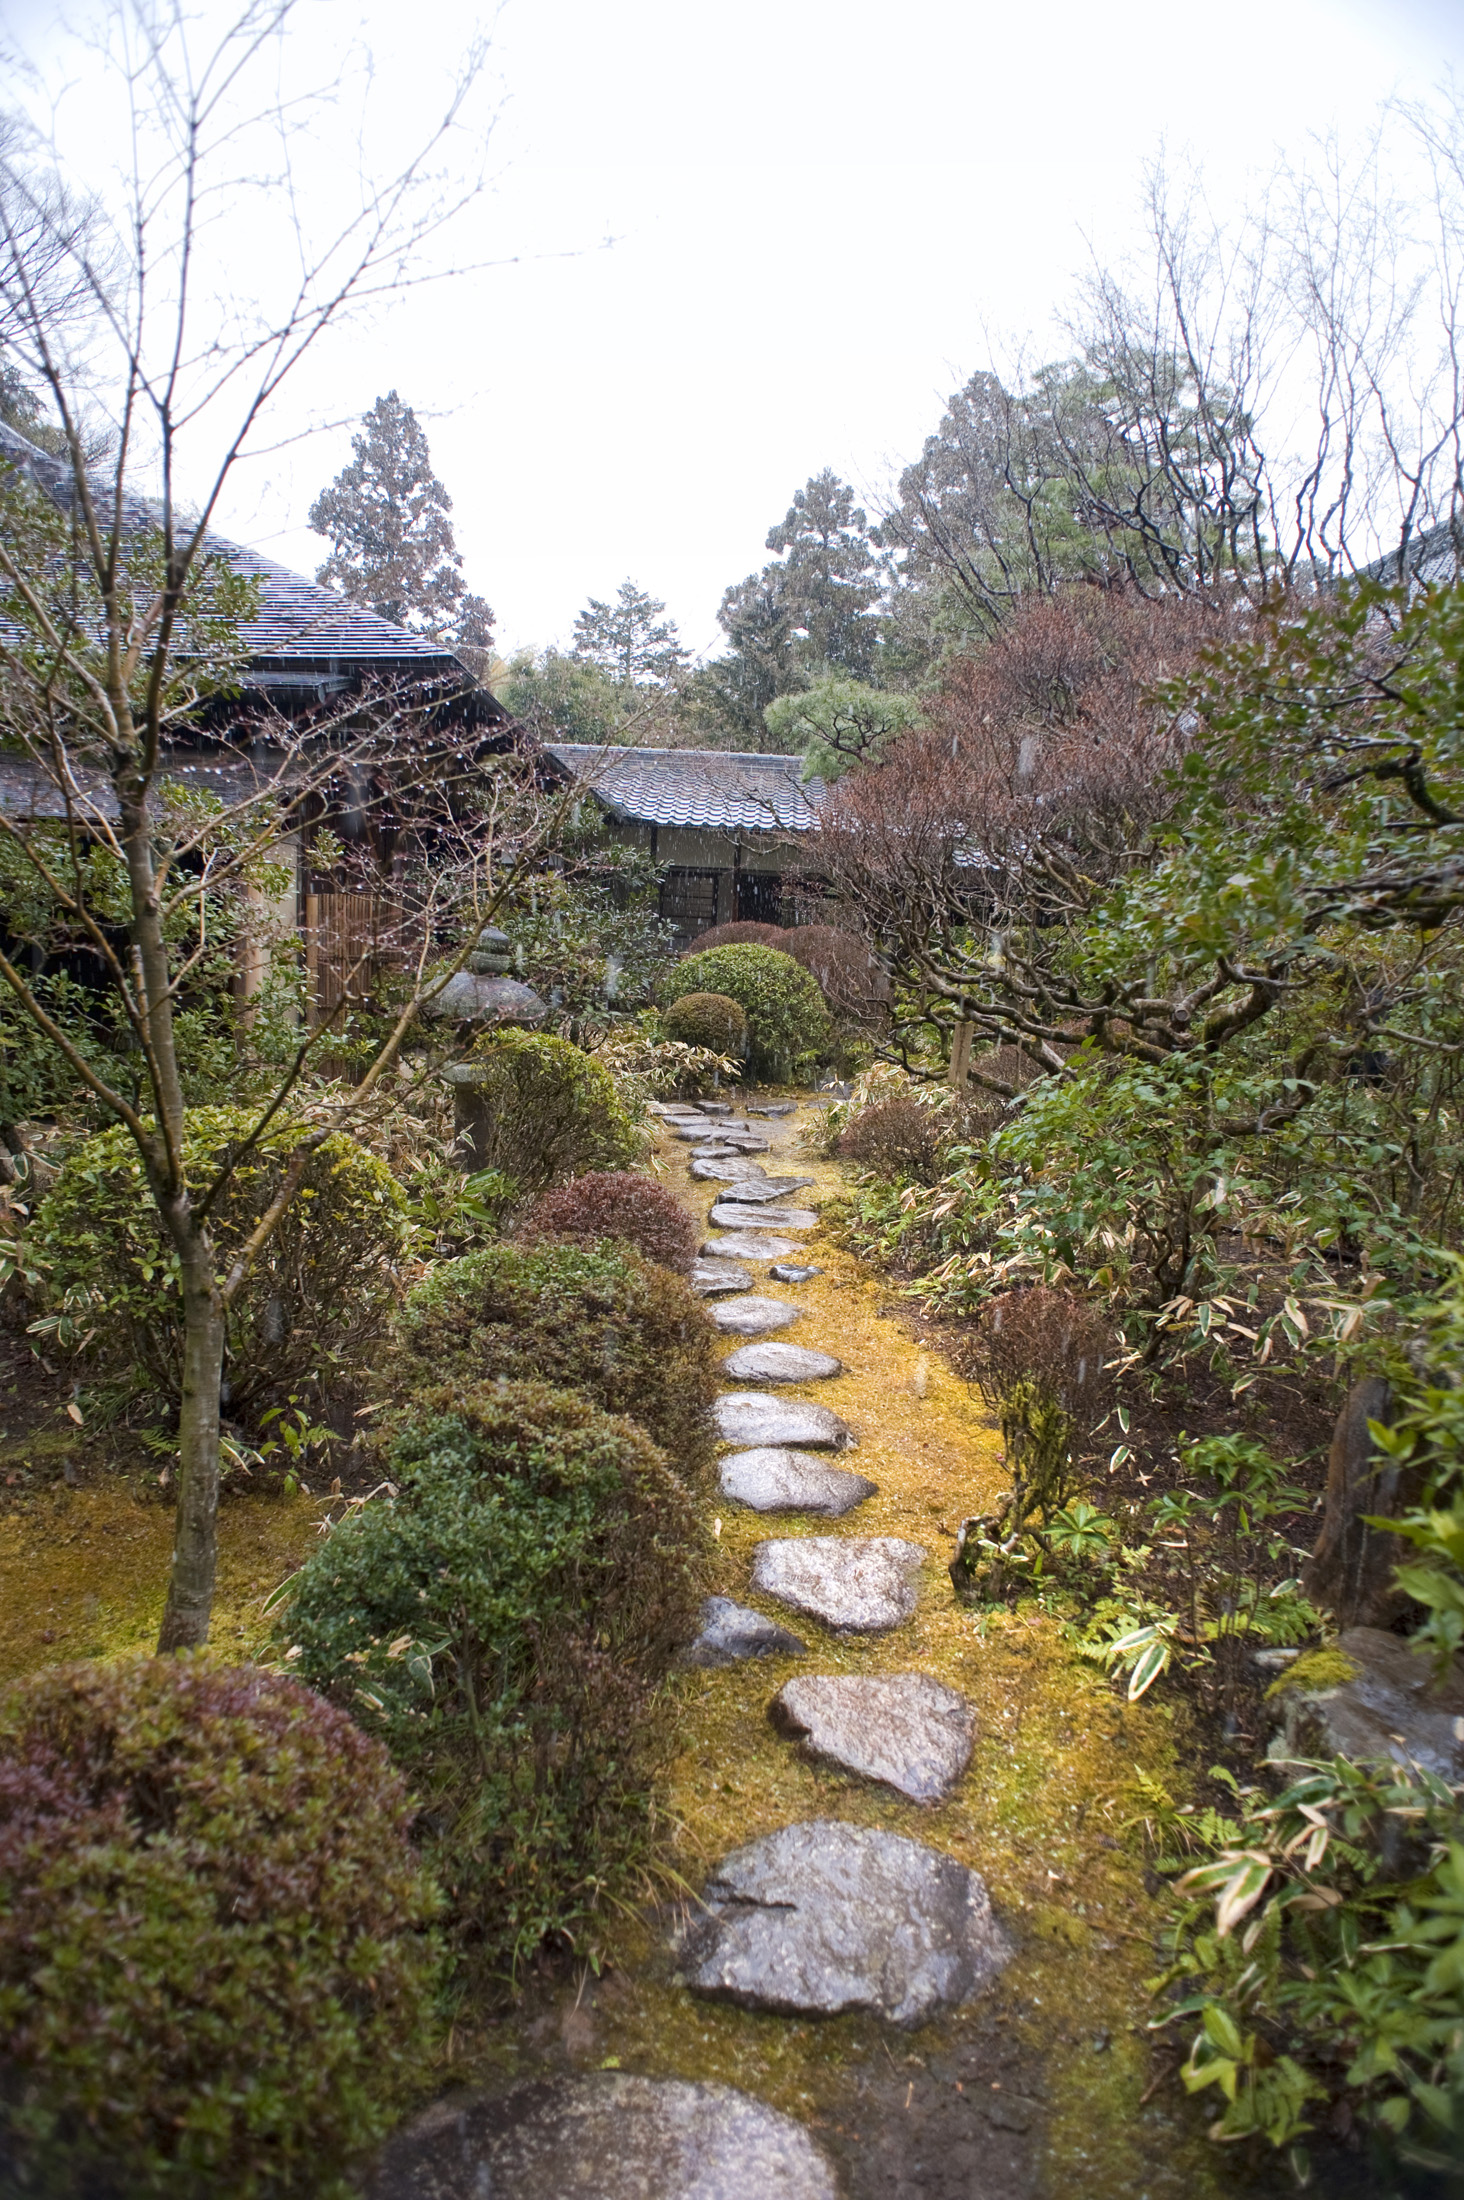 Free Stock photo of Daitoku-ji Gardens | Photoeverywhere